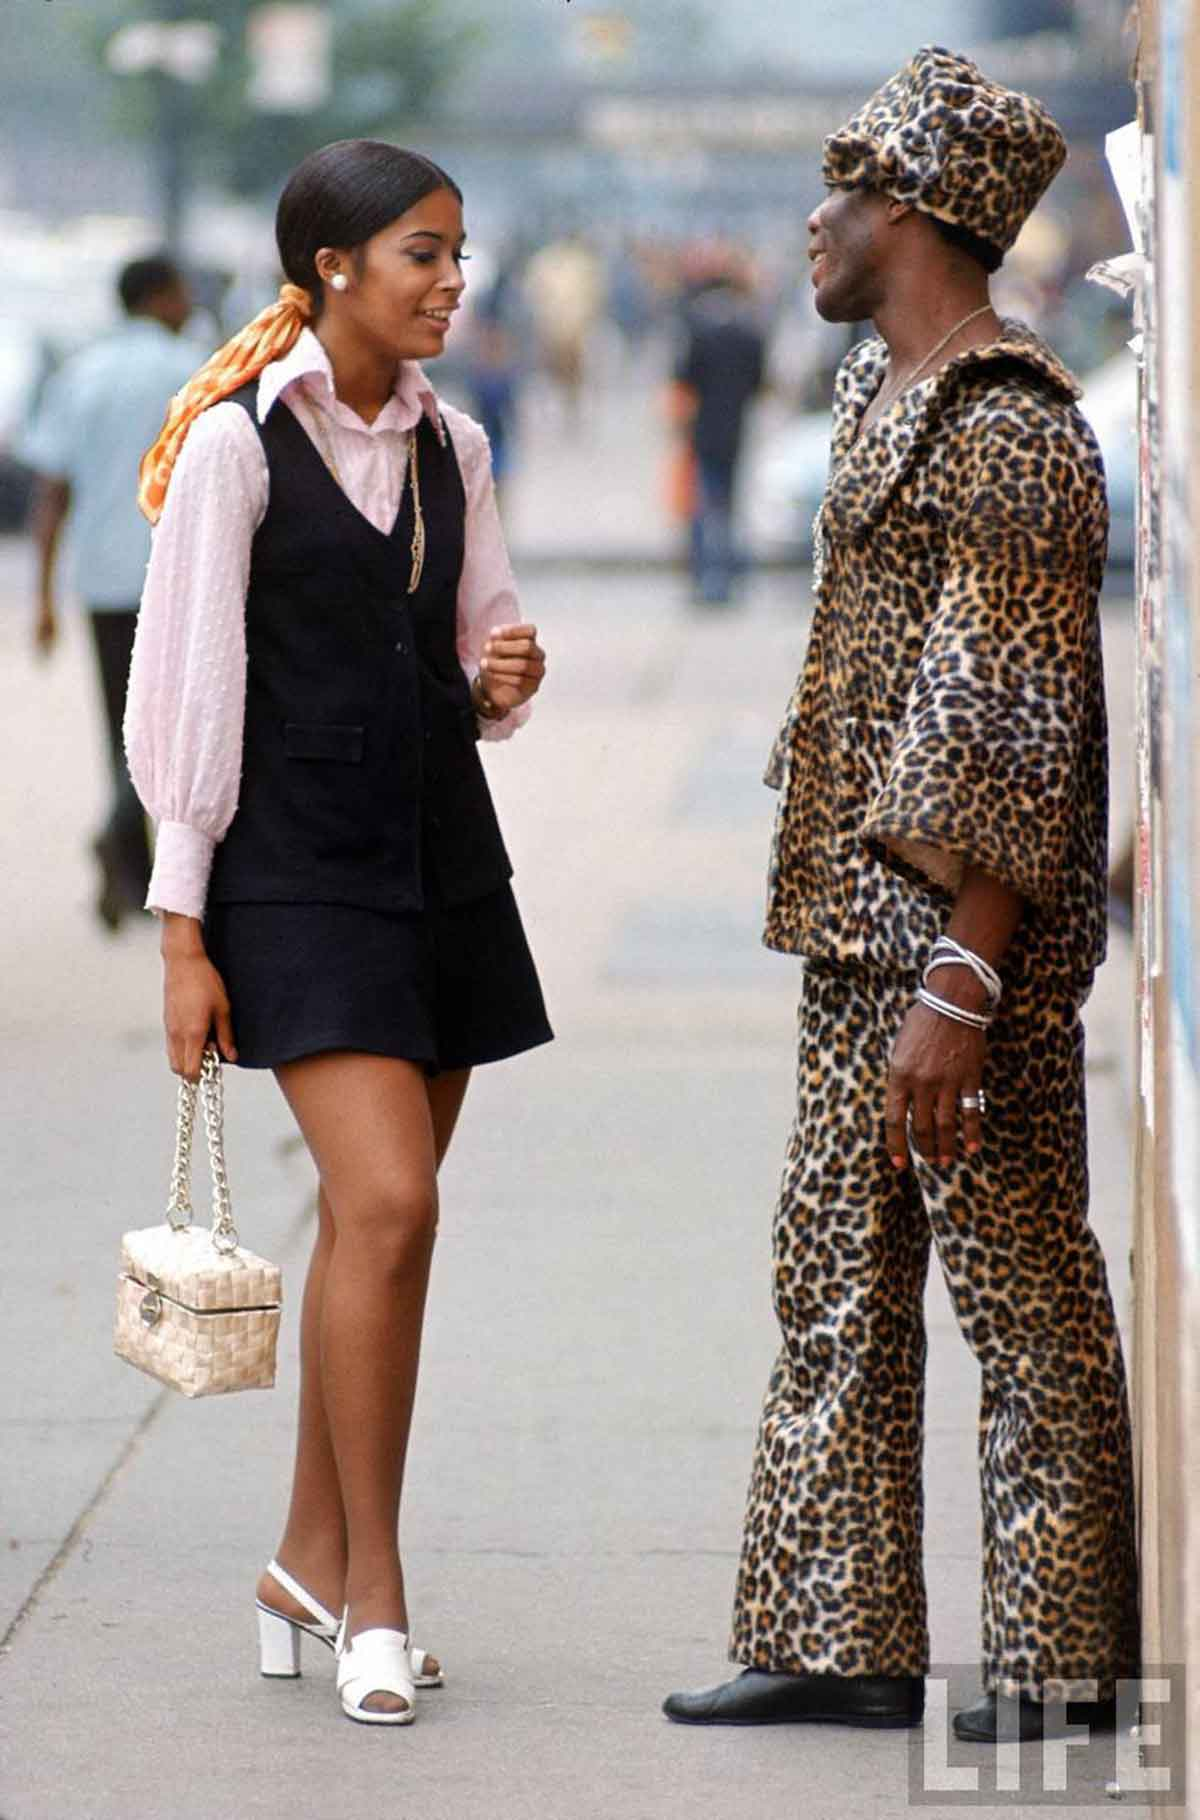 1960s-Fashion---The-New-York-Look-1969-e